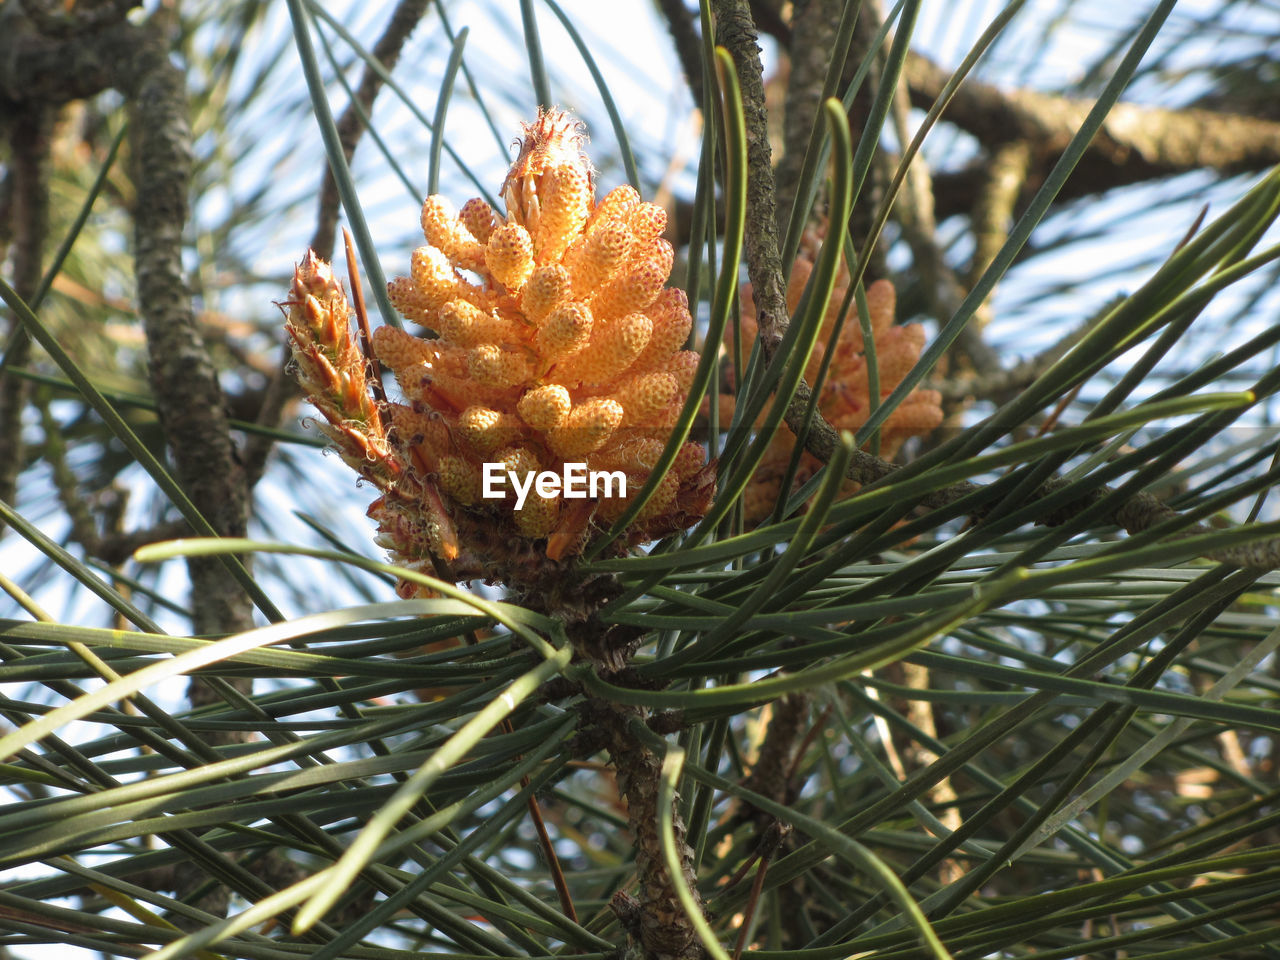 plant, growth, beauty in nature, tree, close-up, nature, focus on foreground, no people, day, coniferous tree, branch, pine tree, needle - plant part, tranquility, pine cone, green color, pinaceae, outdoors, selective focus, leaf